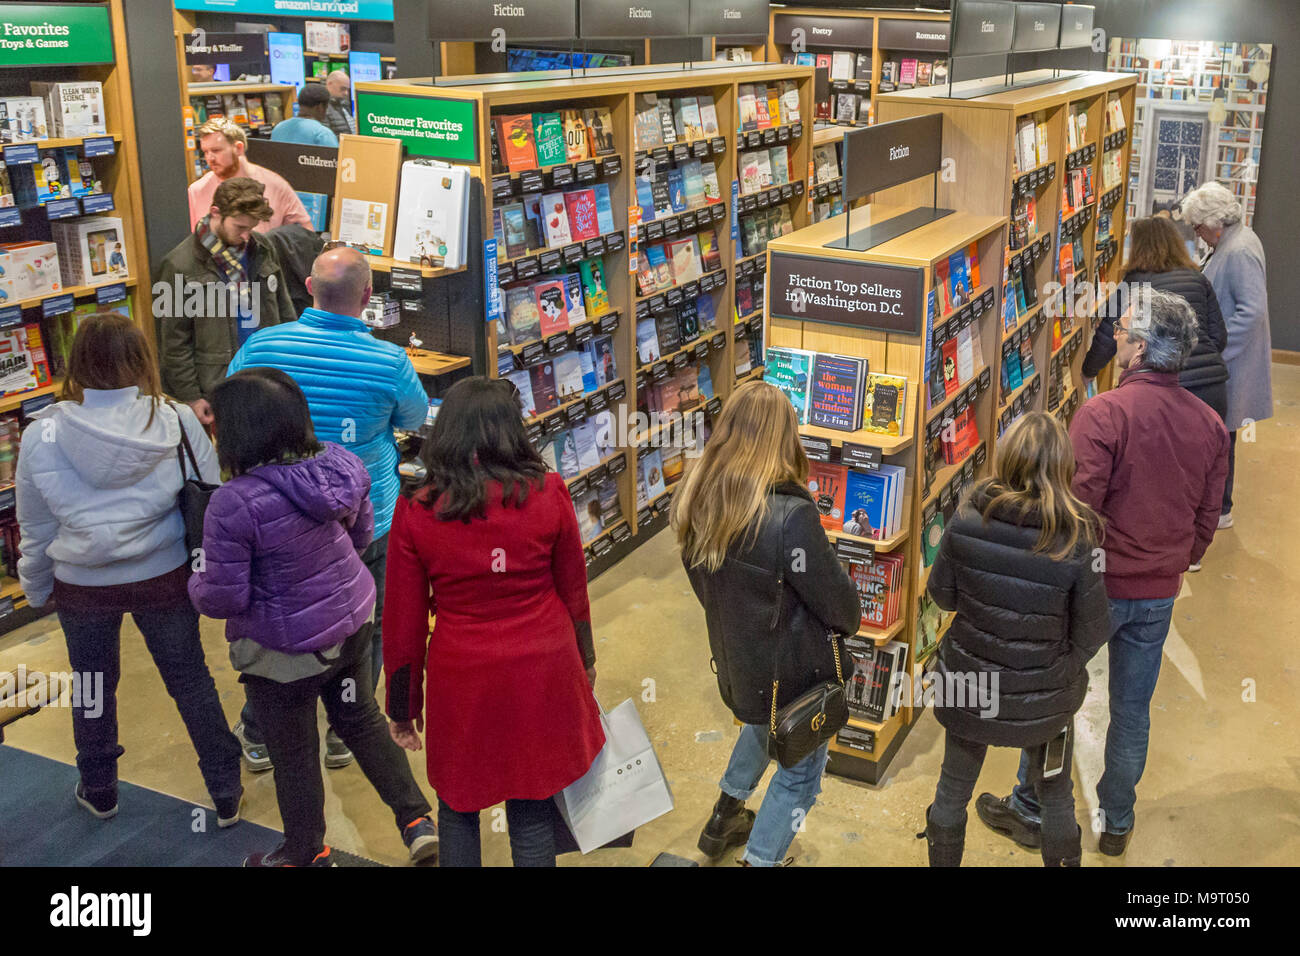 Washington, DC - Amazon's bookstore in Washington's Georgetown neighborhood. The store opened in what used to be a Barnes & Noble bookstore. It displa - Stock Image